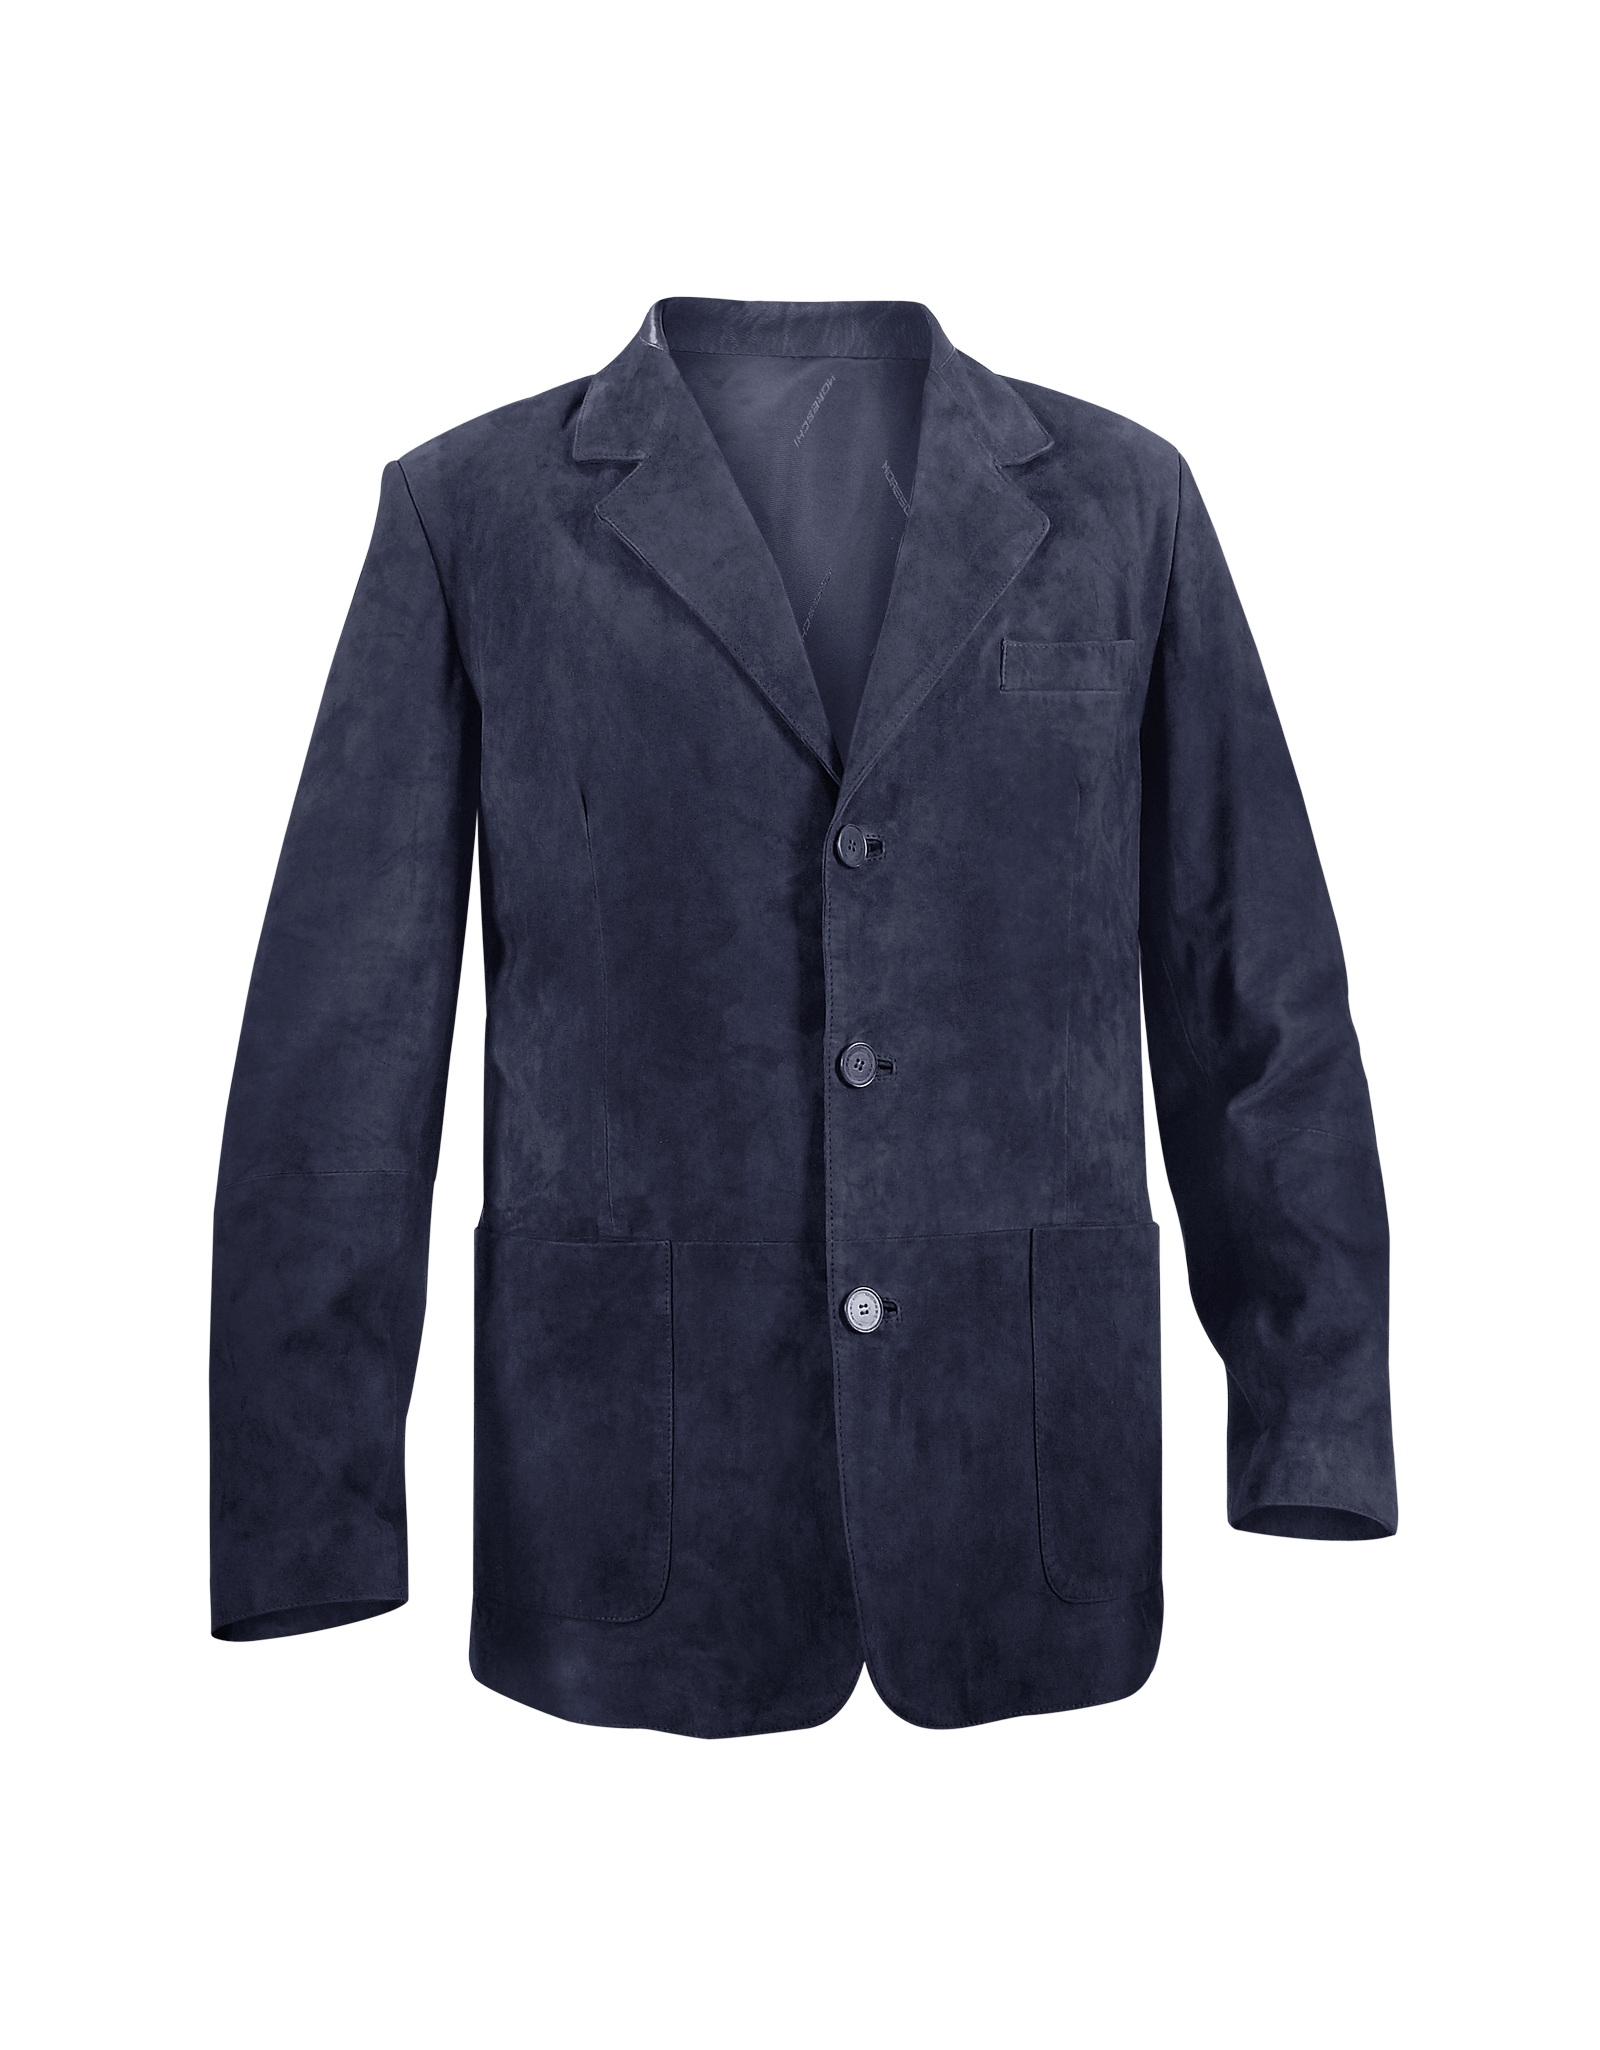 Shop the Latest Collection of Blue Blazers & Sports Coats for Men Online at megasmm.gq FREE SHIPPING AVAILABLE!